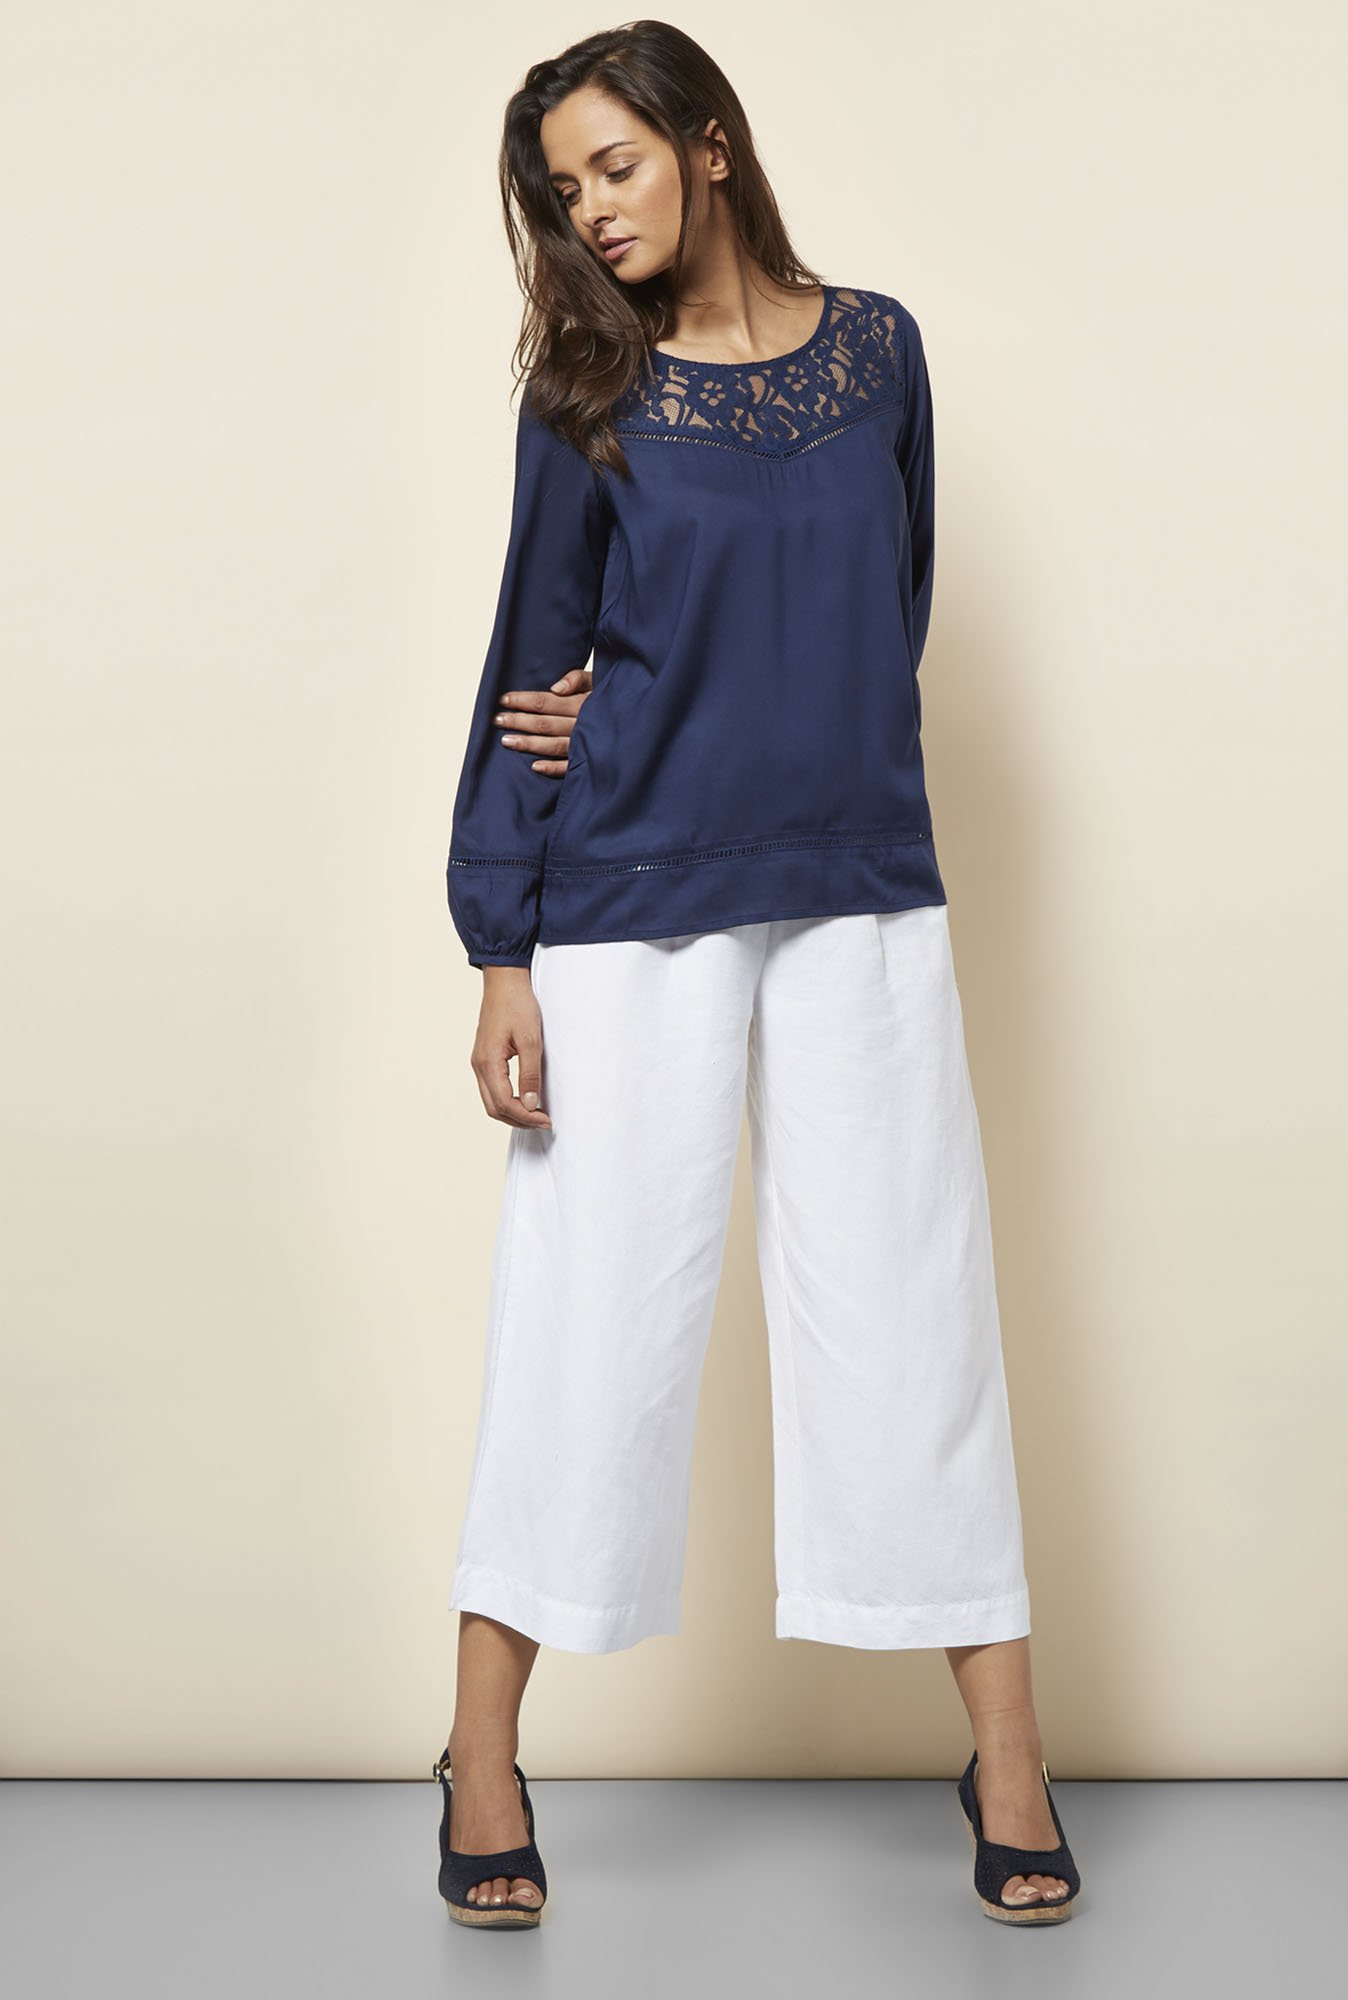 Cottonworld Solid Navy Blouse